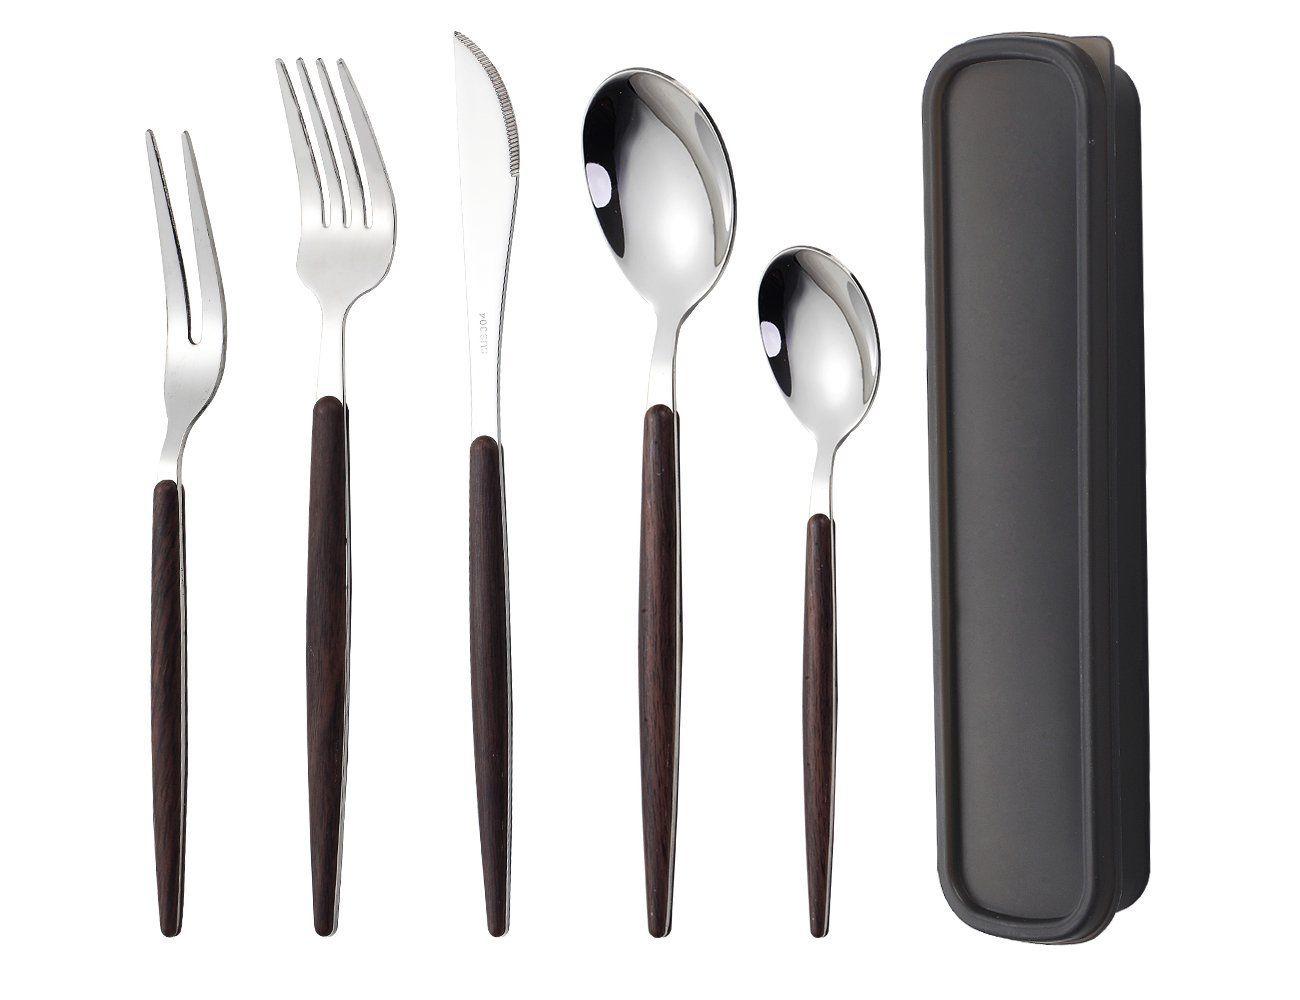 Worthbuy Stainless Steel Travel Utensils With Case 6 Piece